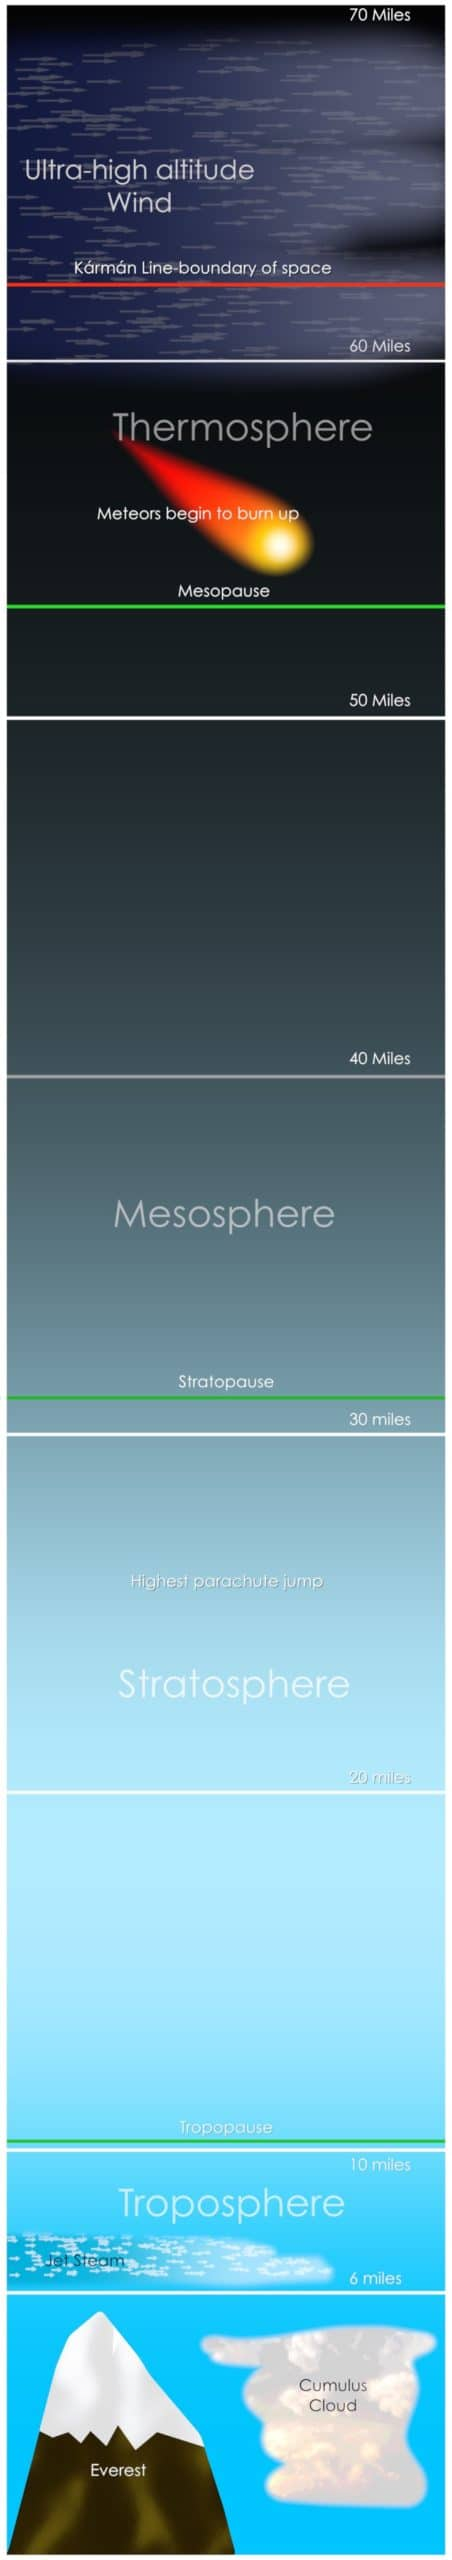 The five main layers of the Earth's atmosphere.  Image: NASA, public domain.